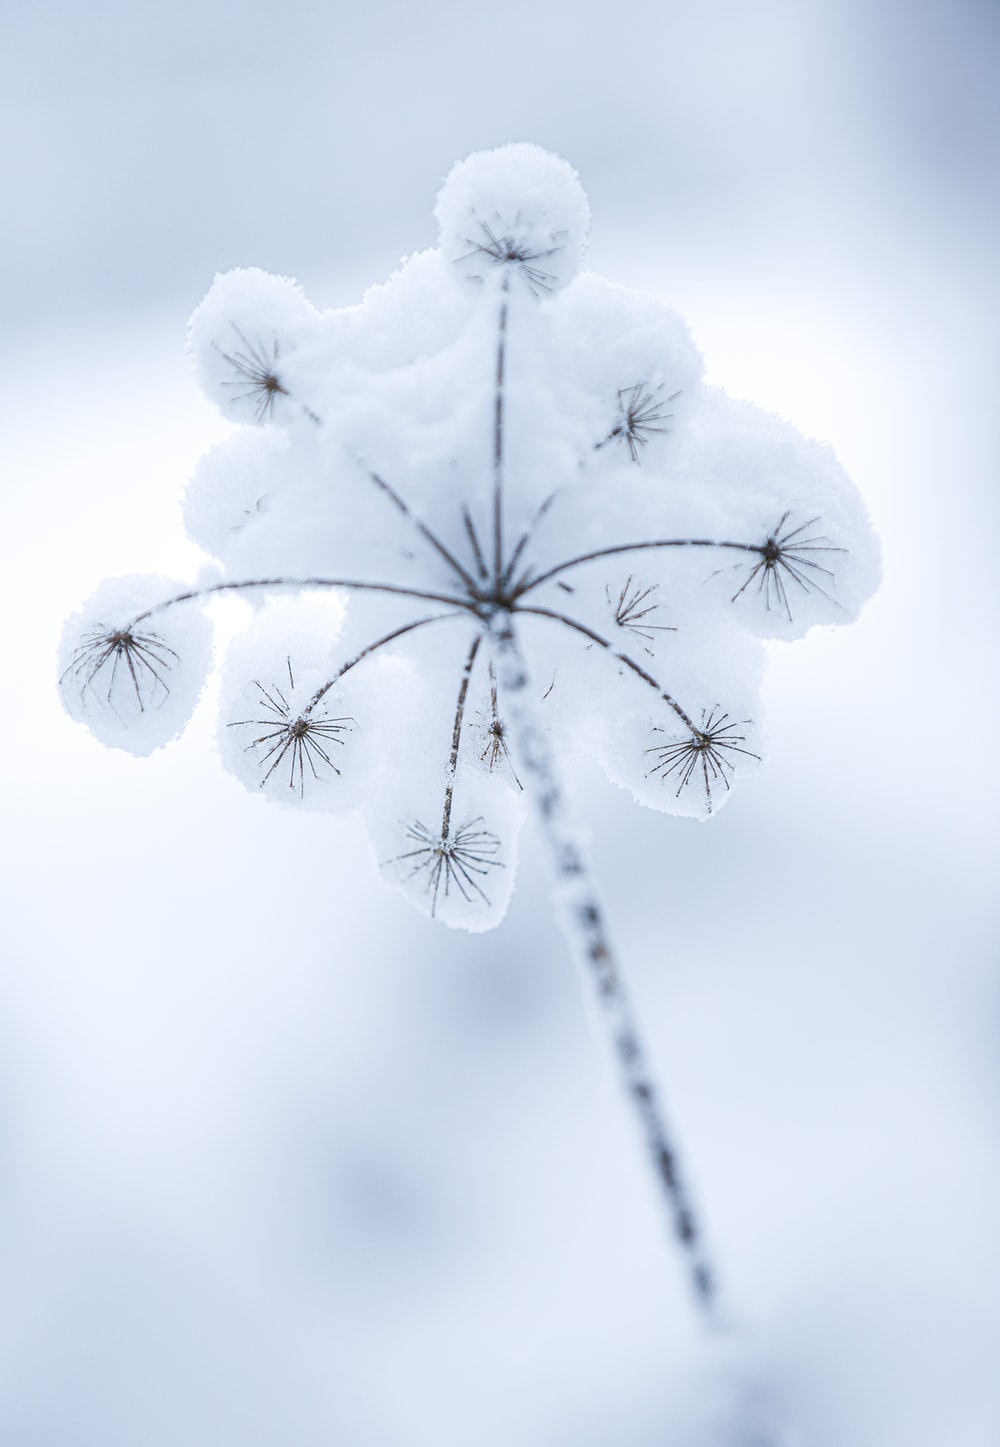 white flower in close up photography